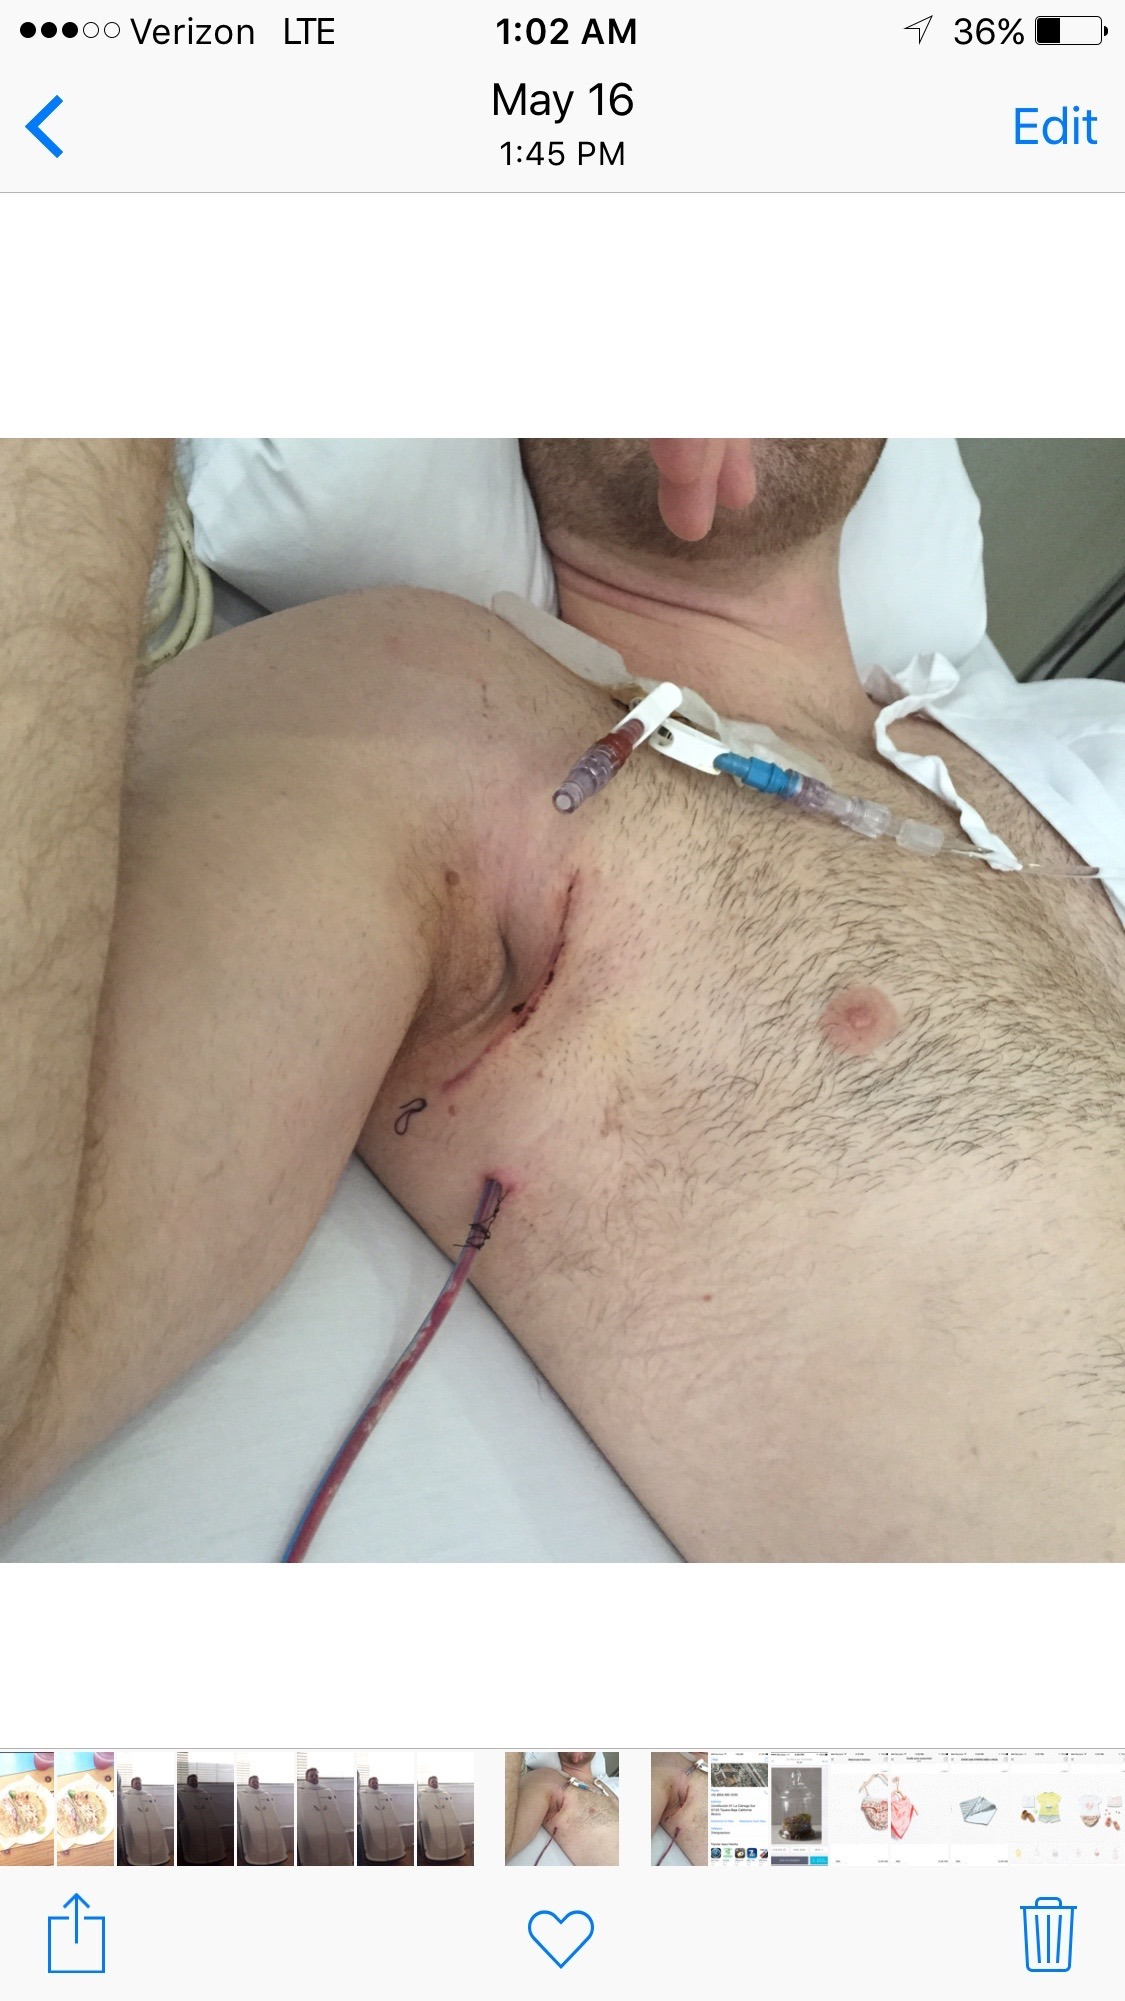 Right after the surgery with the fluid drain below the stitches.they did such an awesome job